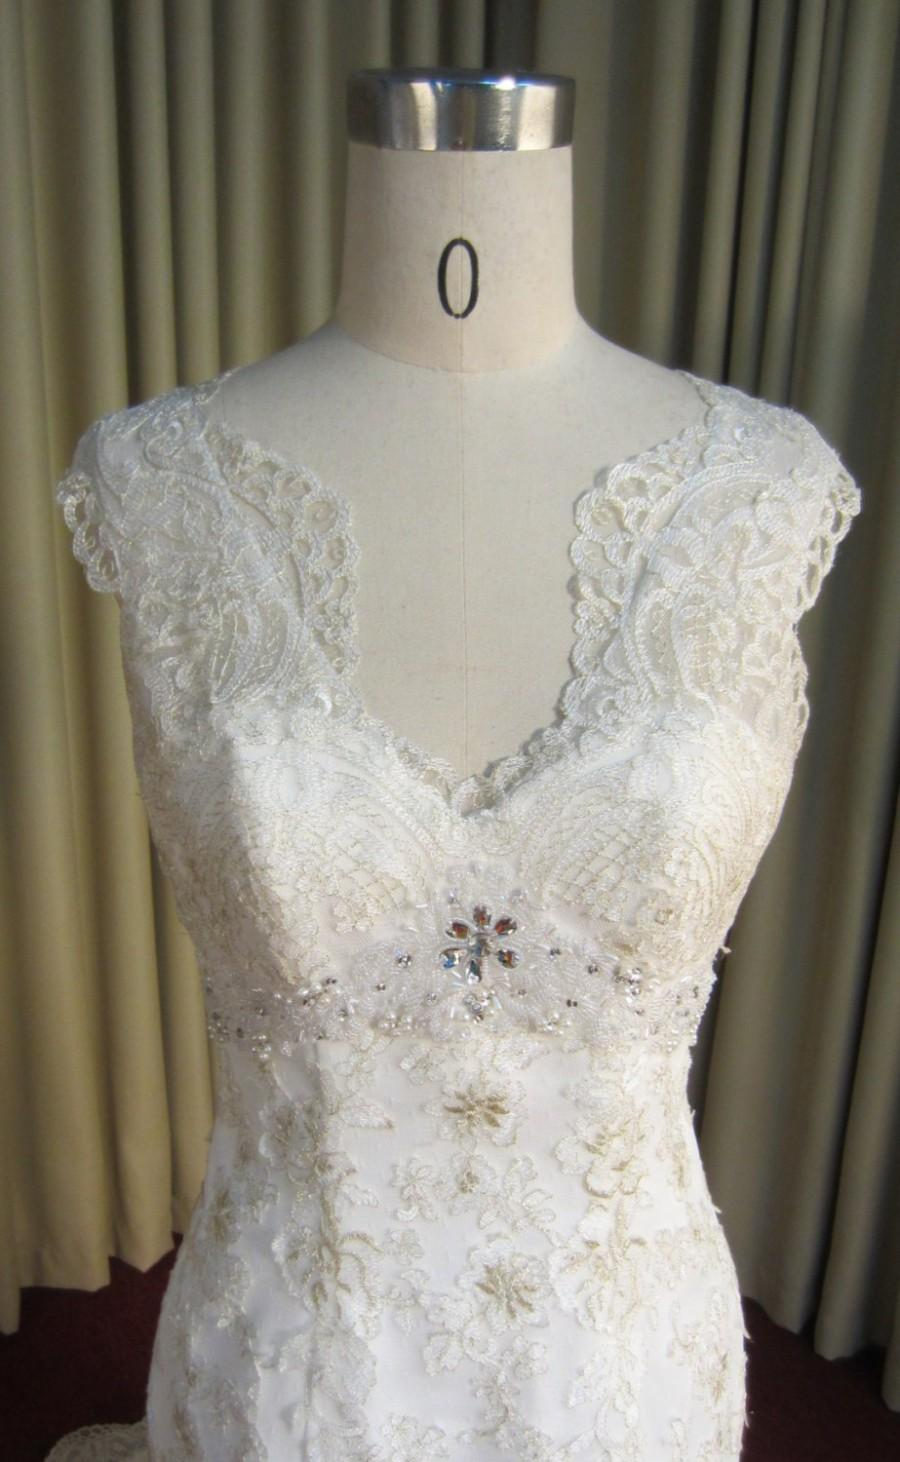 Mermaid Sweetheart Gold Embroidered Lace Wedding Dress With Embellishments Unique